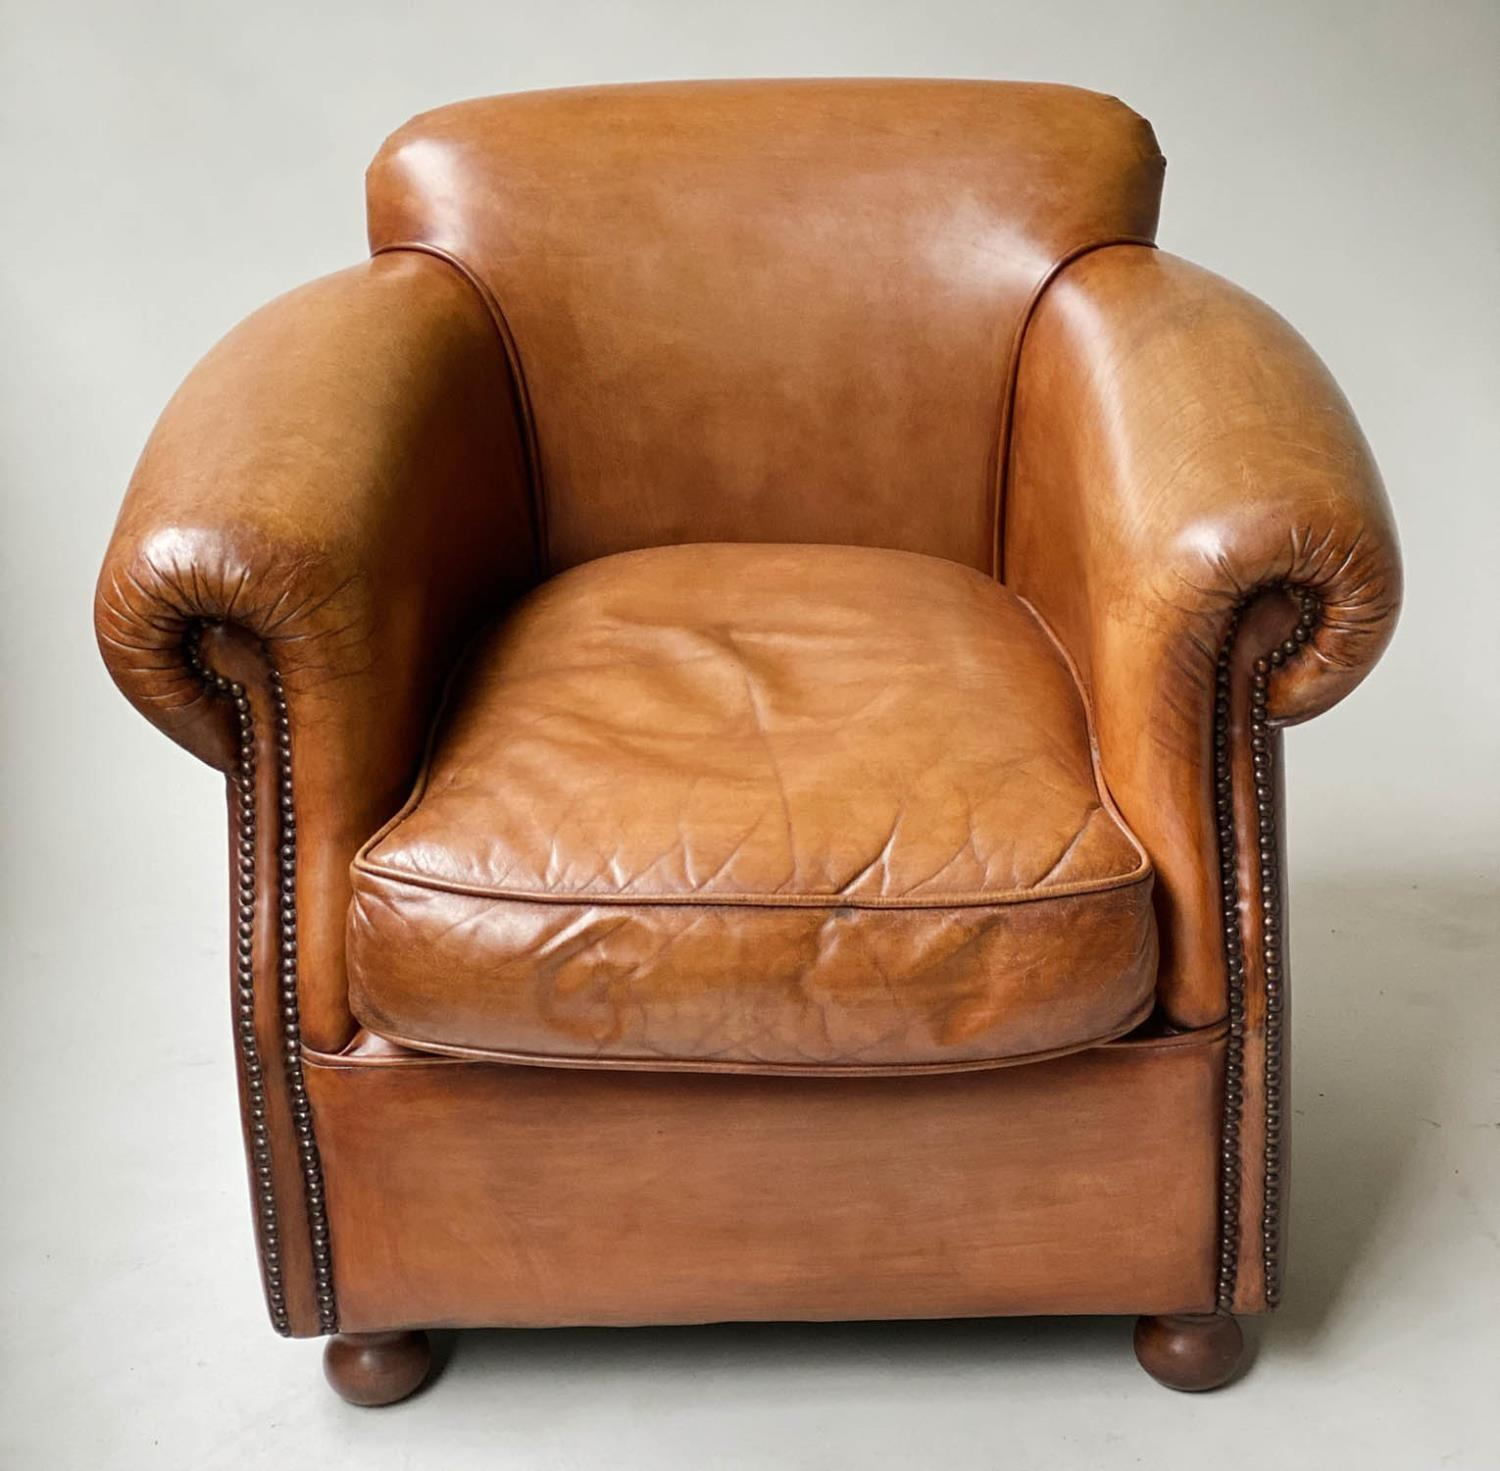 CLUB ARMCHAIRS, a pair, tobacco leaf brown leather and brass studded with scroll arms, 83cm W. (2) - Image 4 of 6